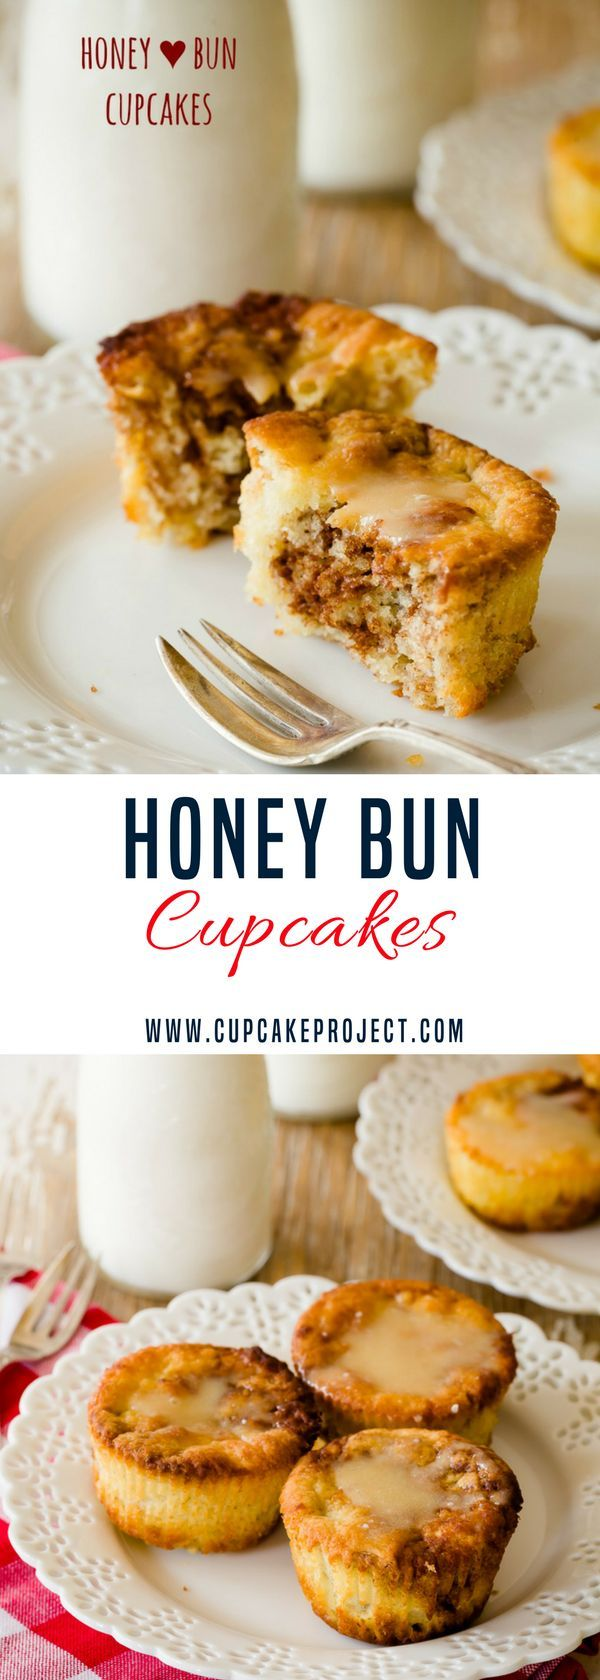 Looking for honeybuns recipes? Honey buns are essentially cinnamon buns made with a cinnamon honey swirl filling and topped with a honey glaze. Add this to your best of Valentines ideas! More easy and from scratch baking recipes from #CupcakeProject #breakfast #valentinesday